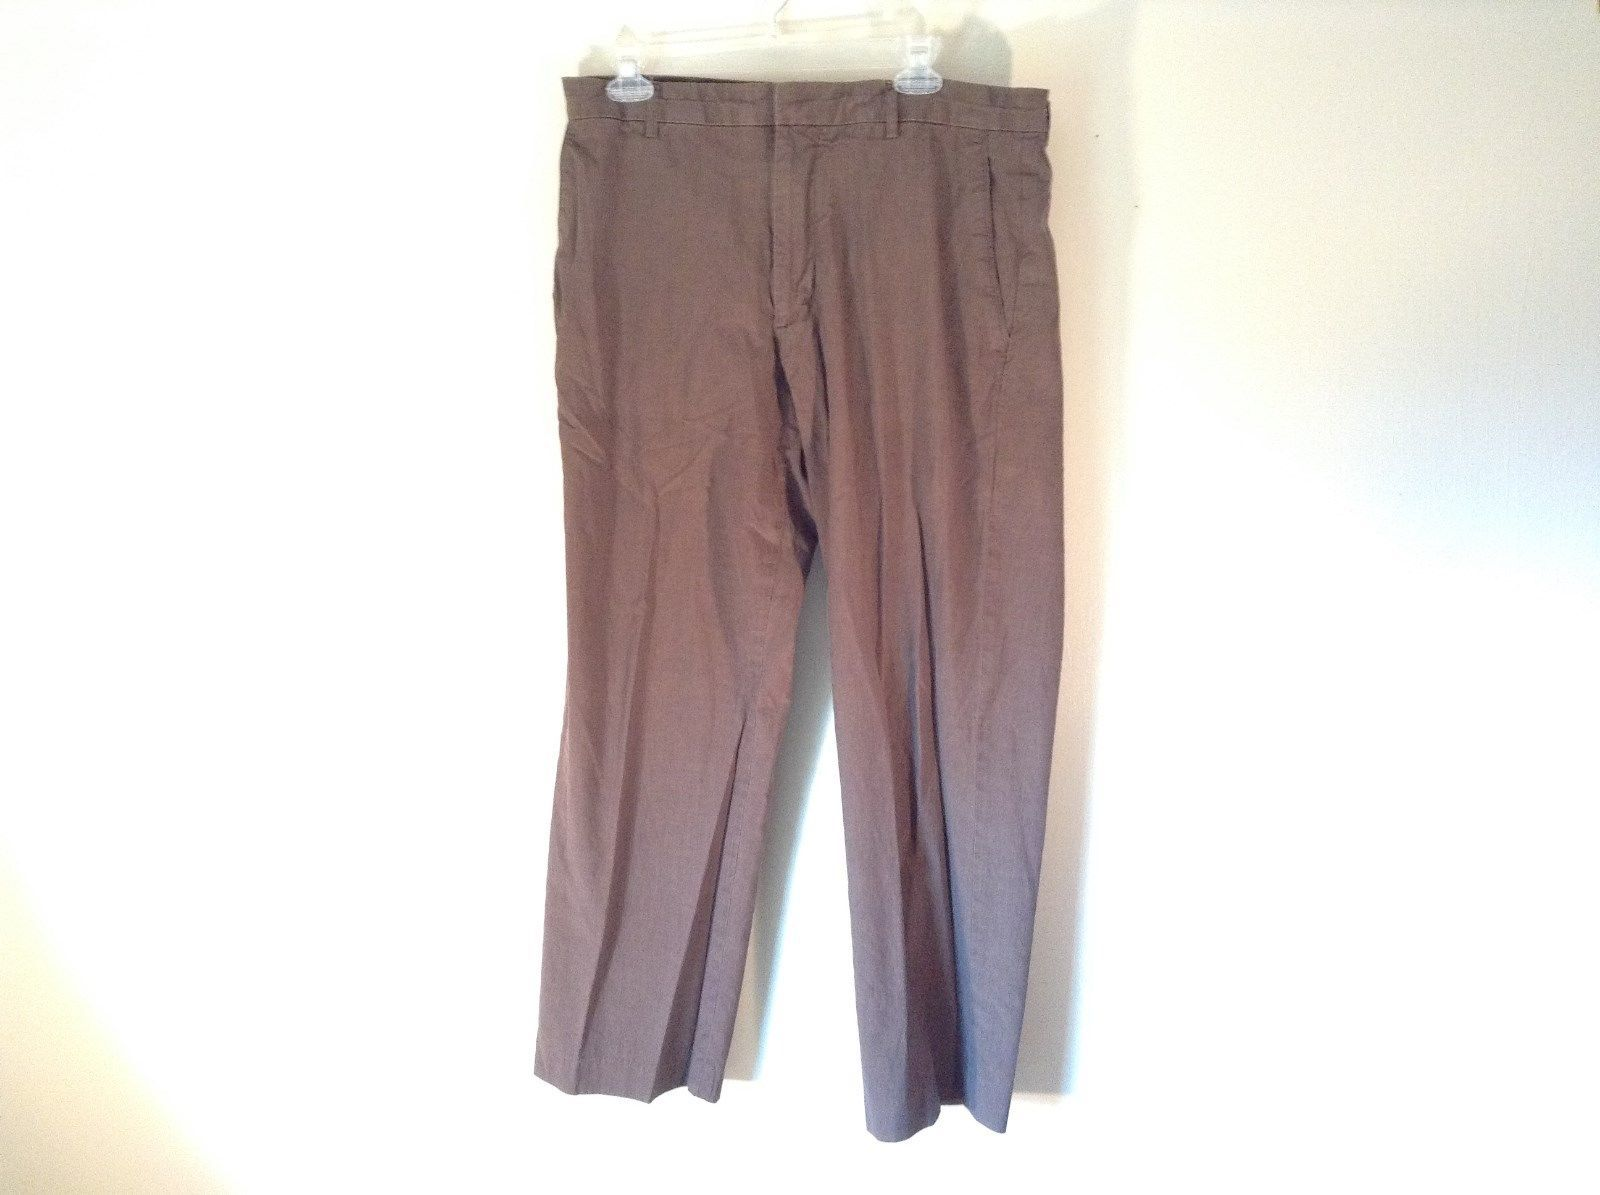 J Crew Size 36 by 30 Brown Herring Bone Dress Pants Wool Blend Made in Hungary